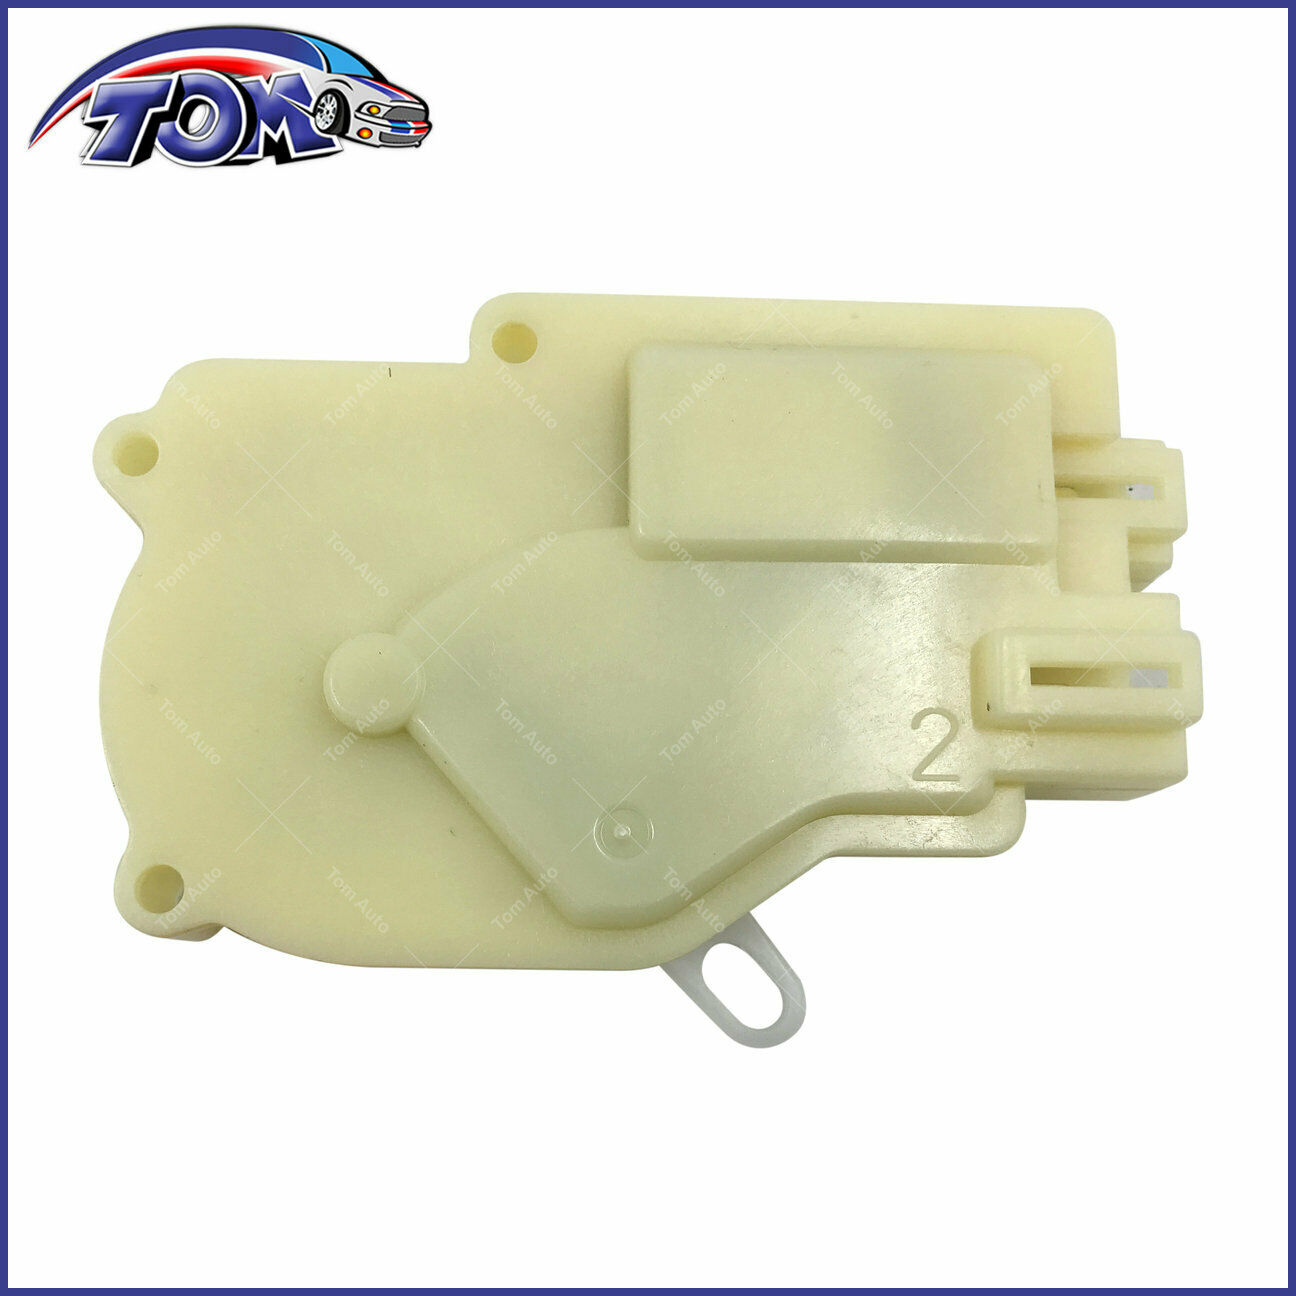 Power Trunk / Tailgate Lock Actuator Rear Fits 02-06 Acura